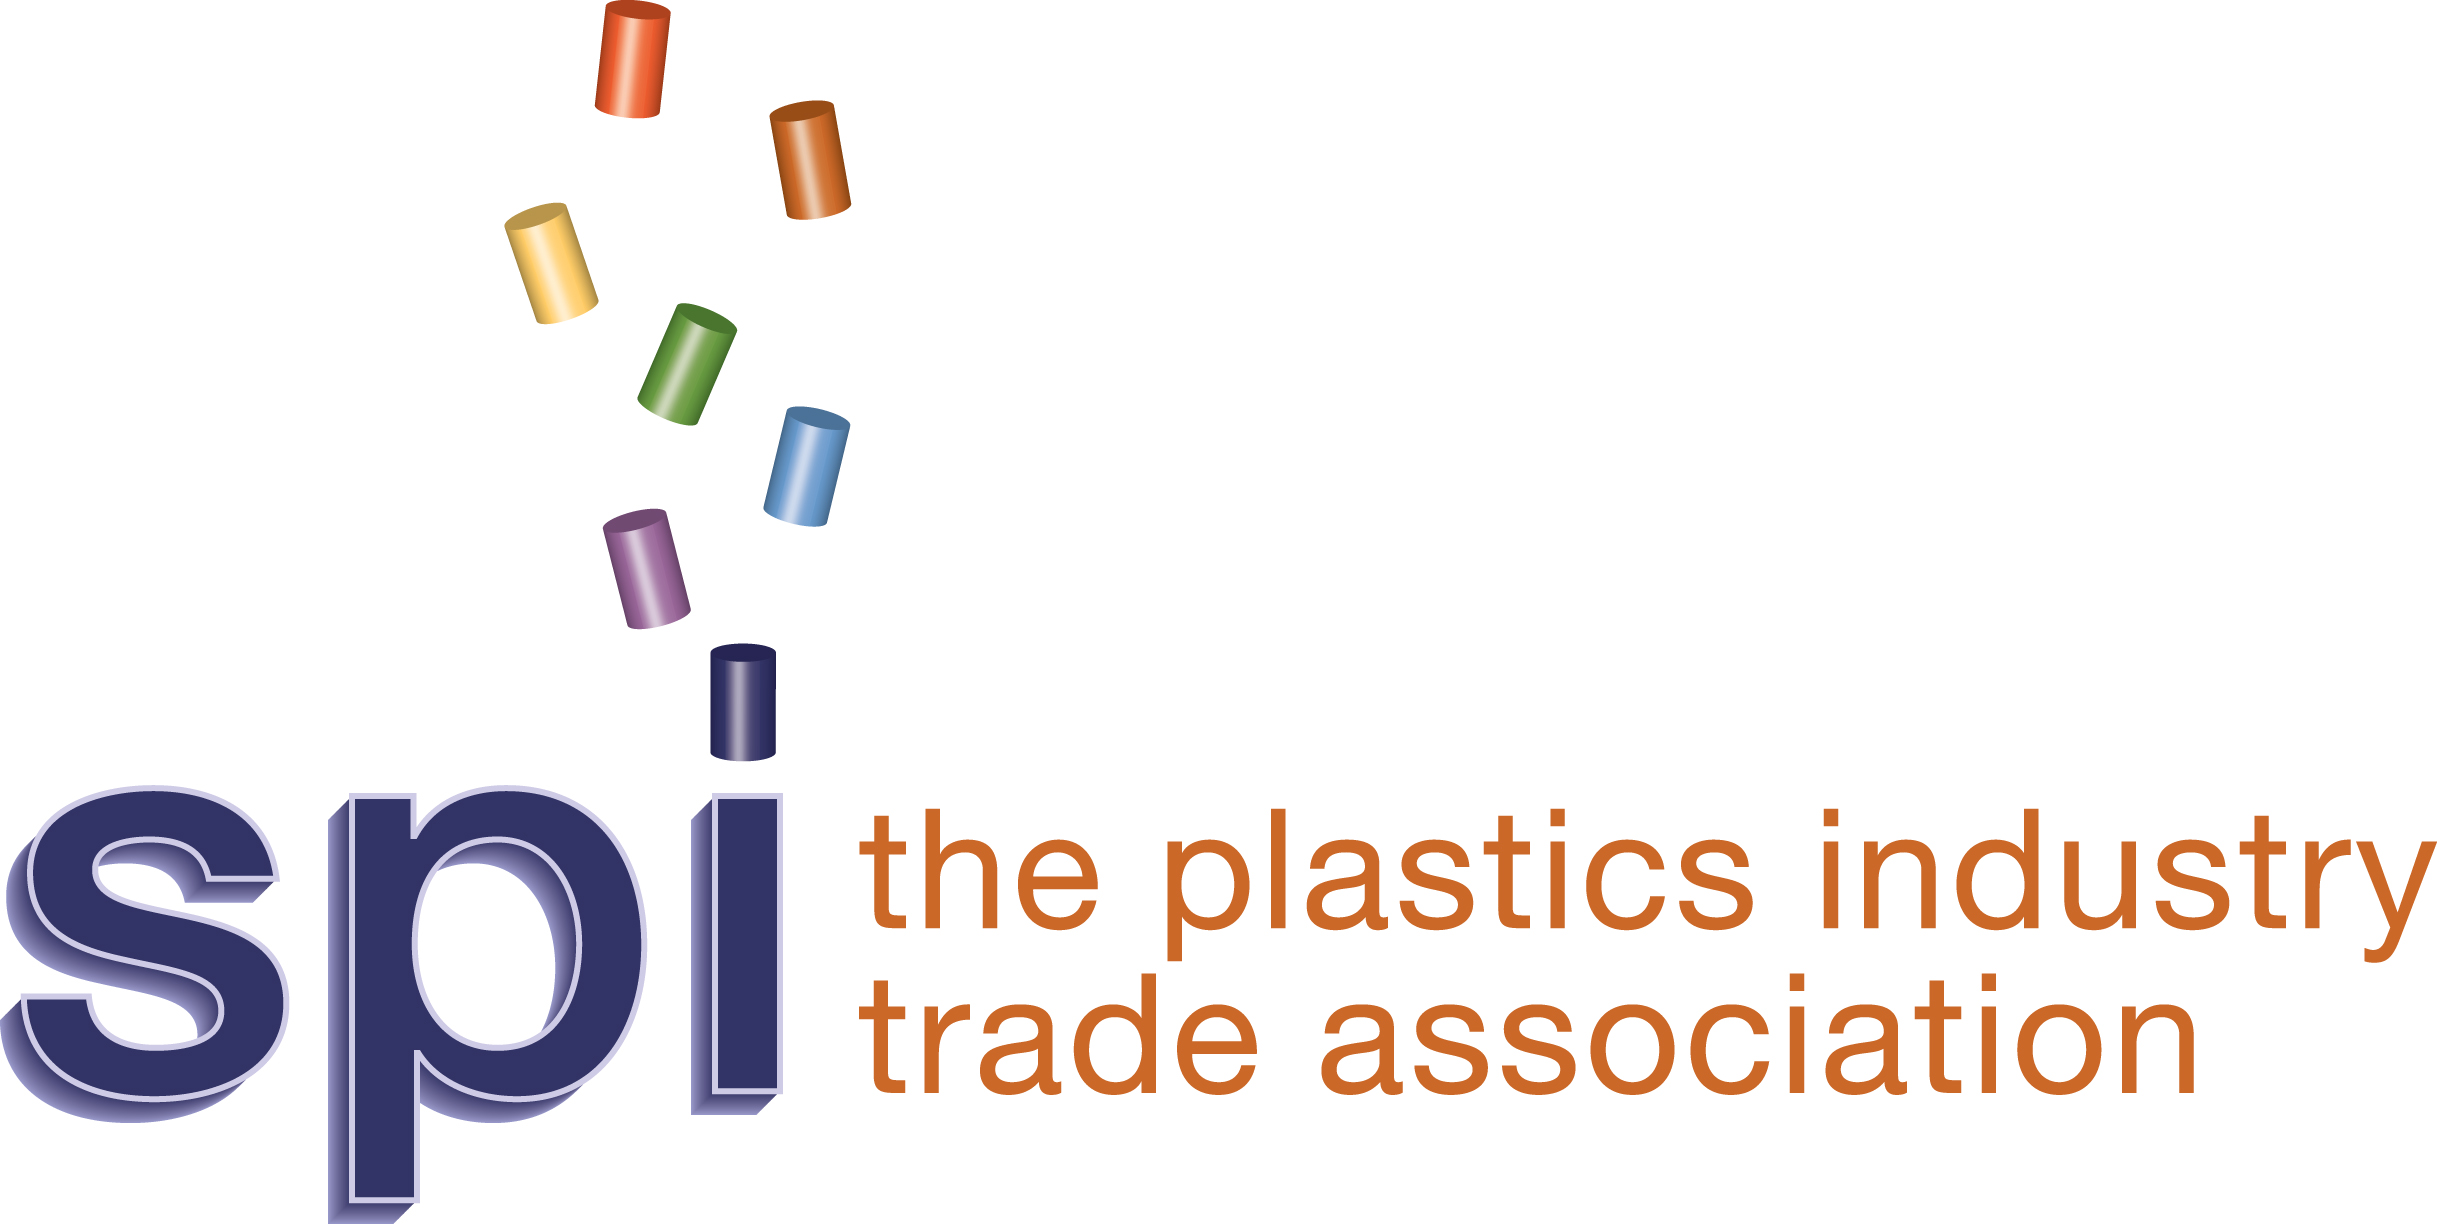 GLOBAL SUMMIT TO FOCUS ON 'RENAISSANCE' IN NORTH AMERICAN PLASTICS AND IMPLICATIONS FOR ENTIRE INDUSTRY SUPPLY CHAIN